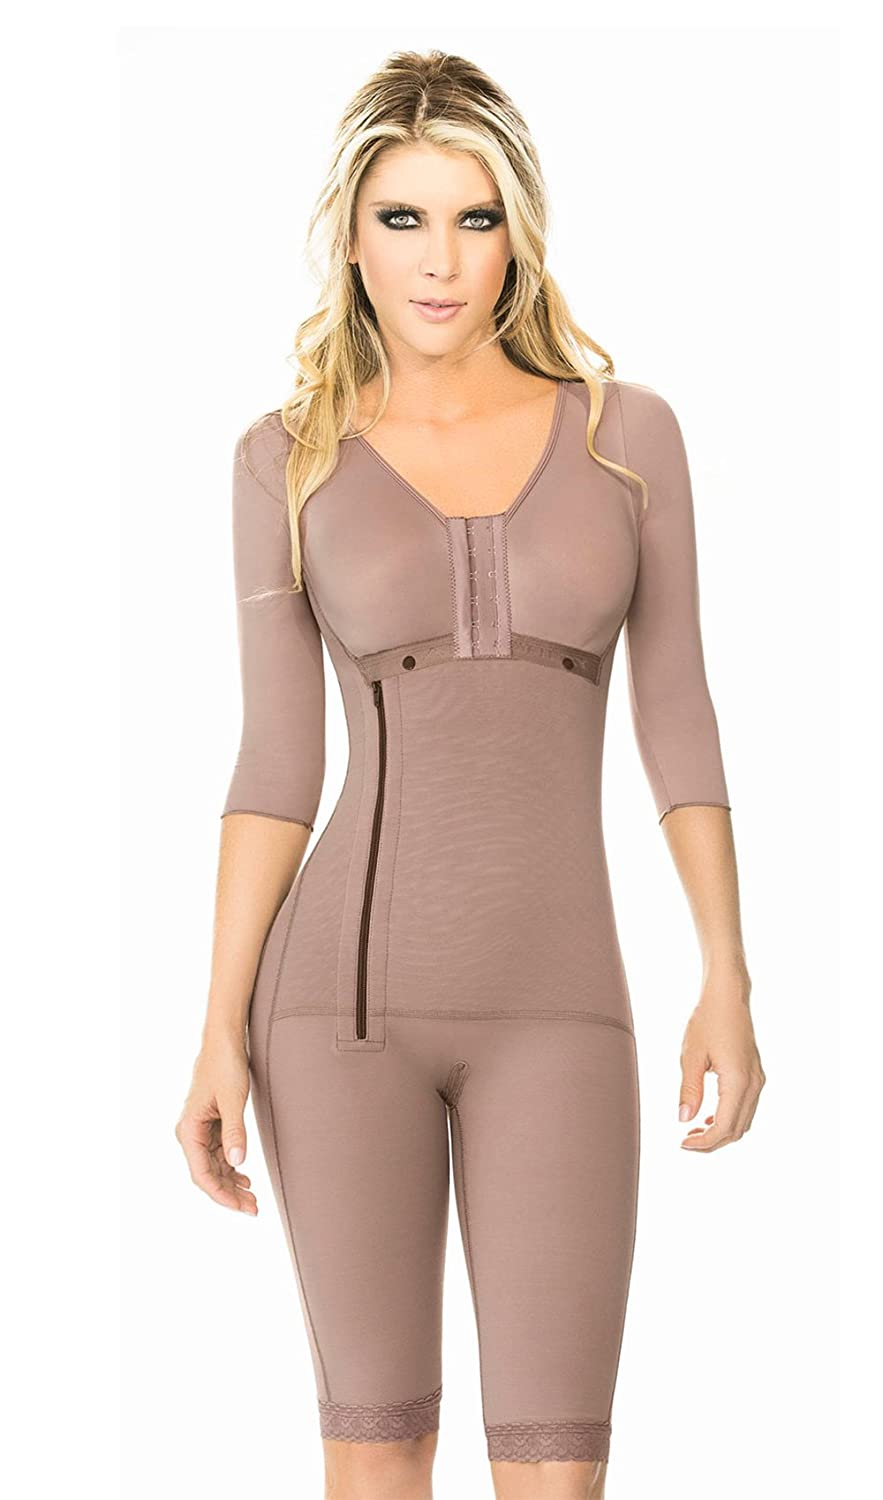 7fc51d21cd481 Ann Chery Comfort Line High Compression Post Surgical Daily Use Body Shaper Liposuction    Faja Colombiana at Amazon Women s Clothing store